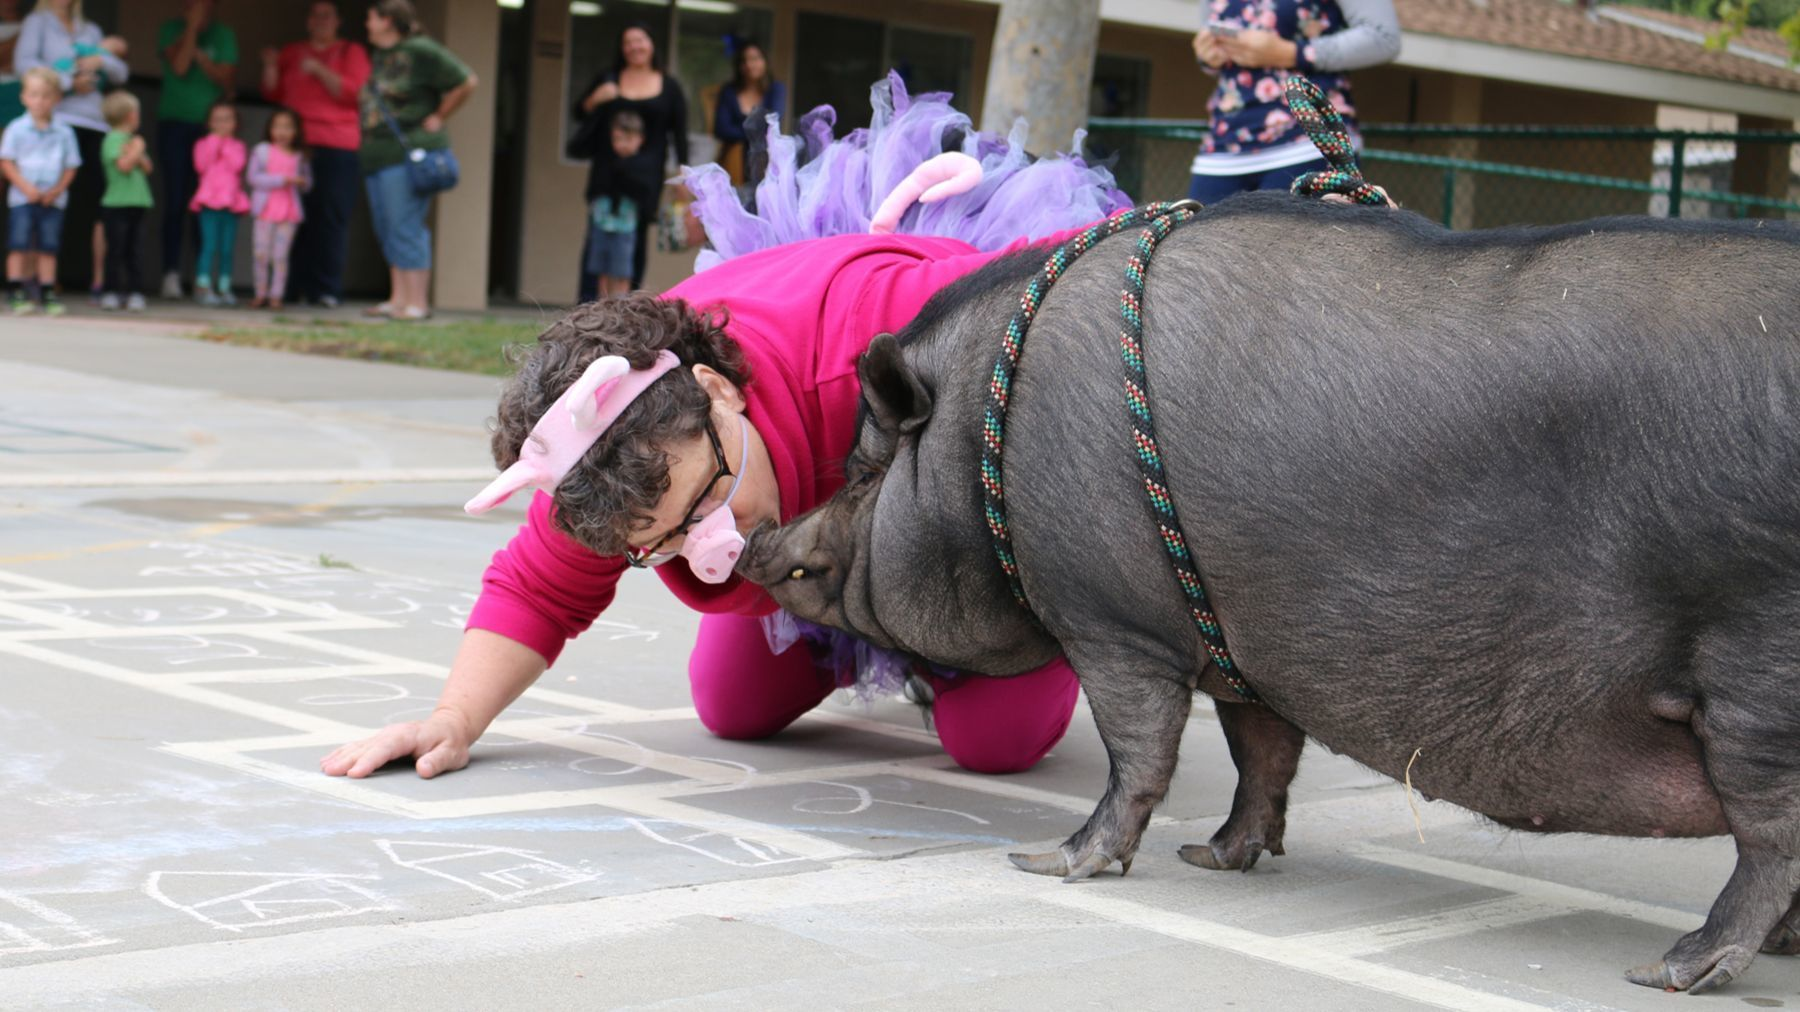 Dressed in swine garb, Ramona Lutheran Christian School Principal Elaine Crary kisses a pig in front of her students after telling them she would if they hit their book fair sales goal. They surpassed the goal.